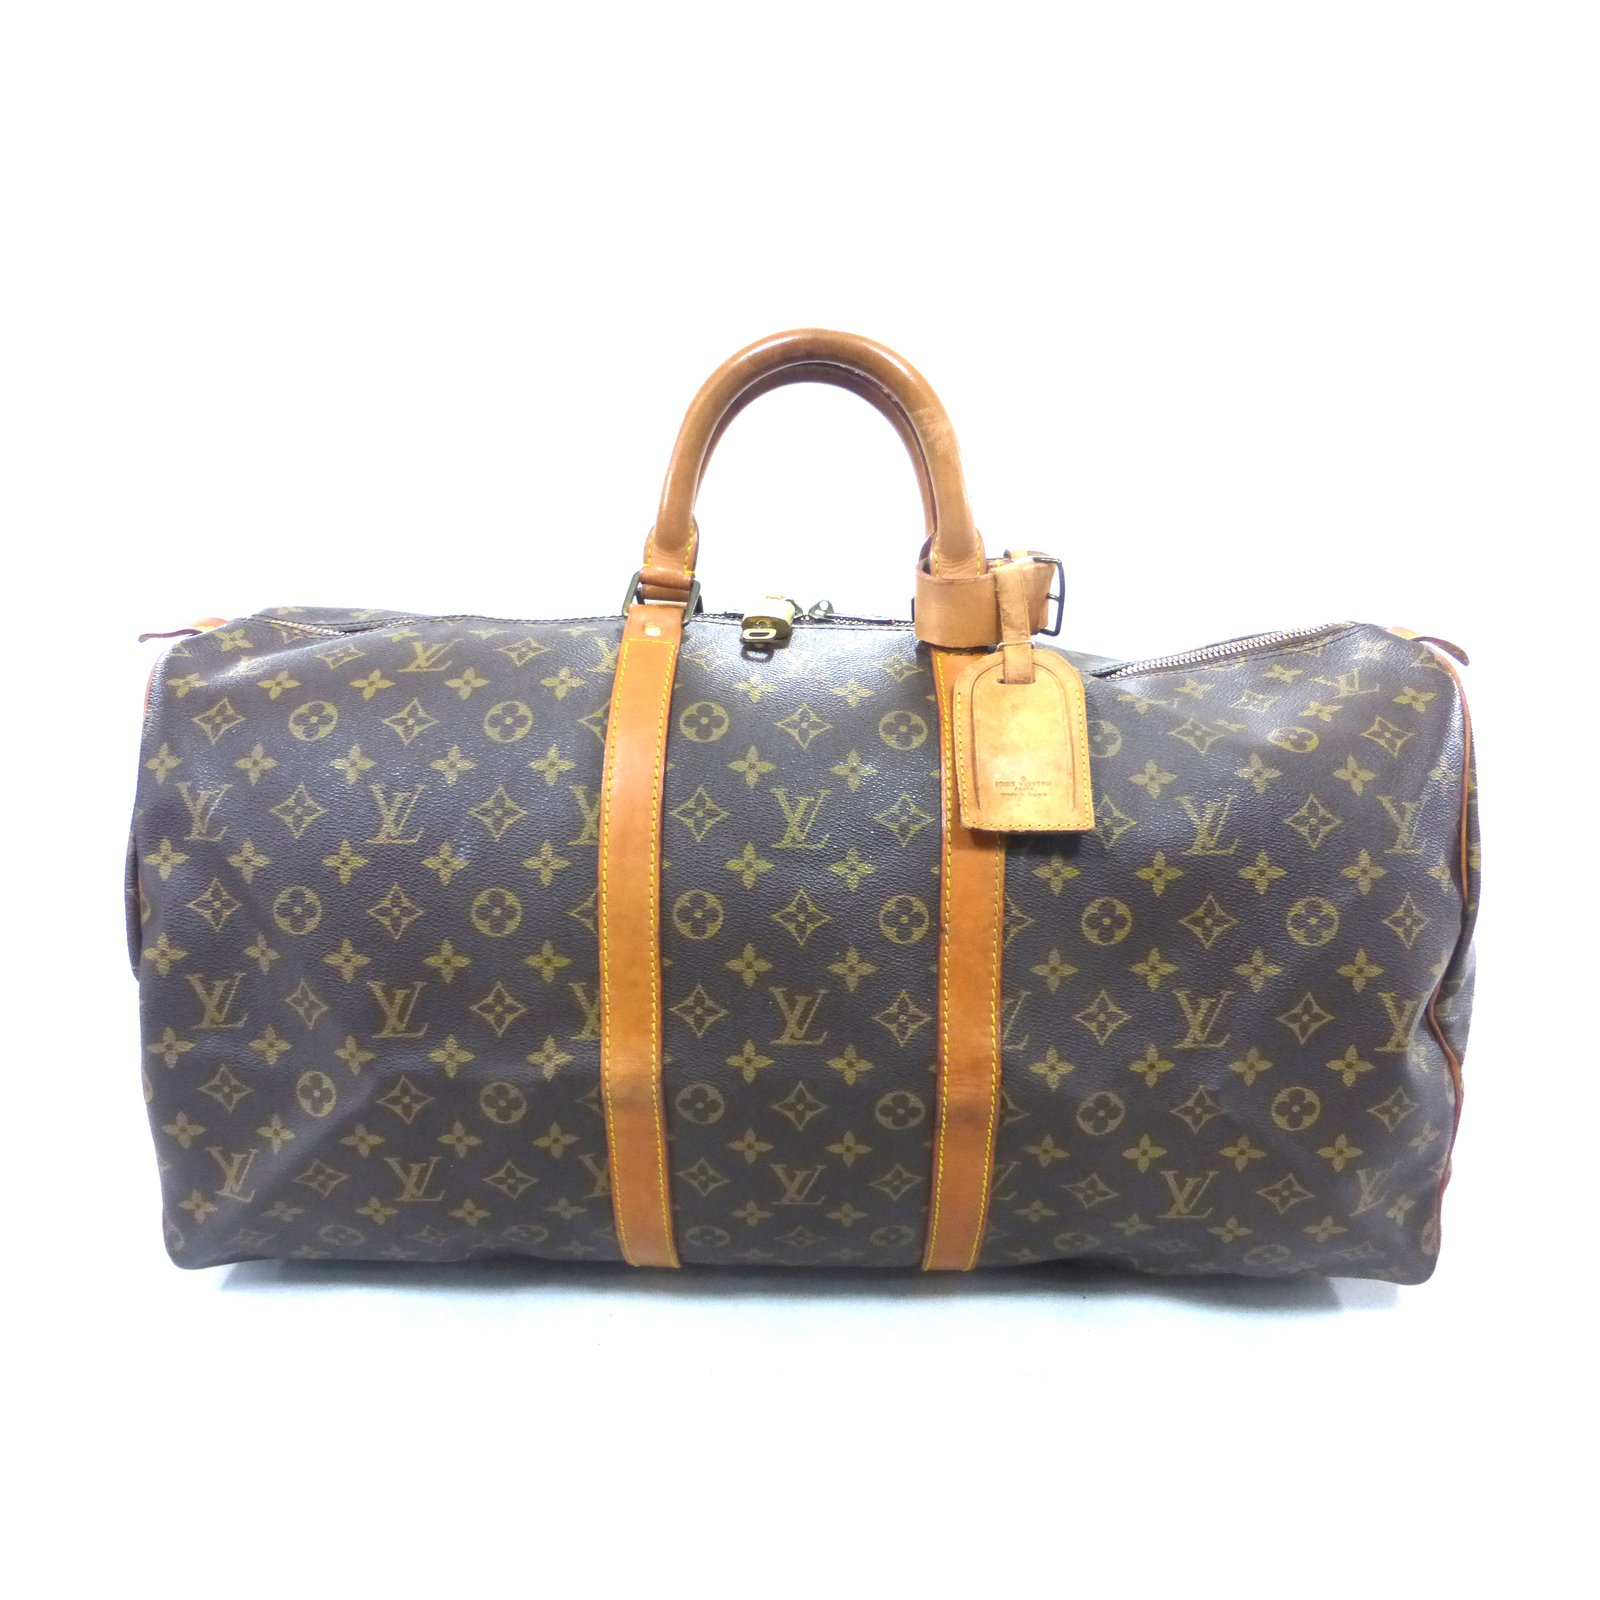 f2e865b7390e Louis Vuitton Keepall 55 monogram Travel bag Leather Brown ref.87425